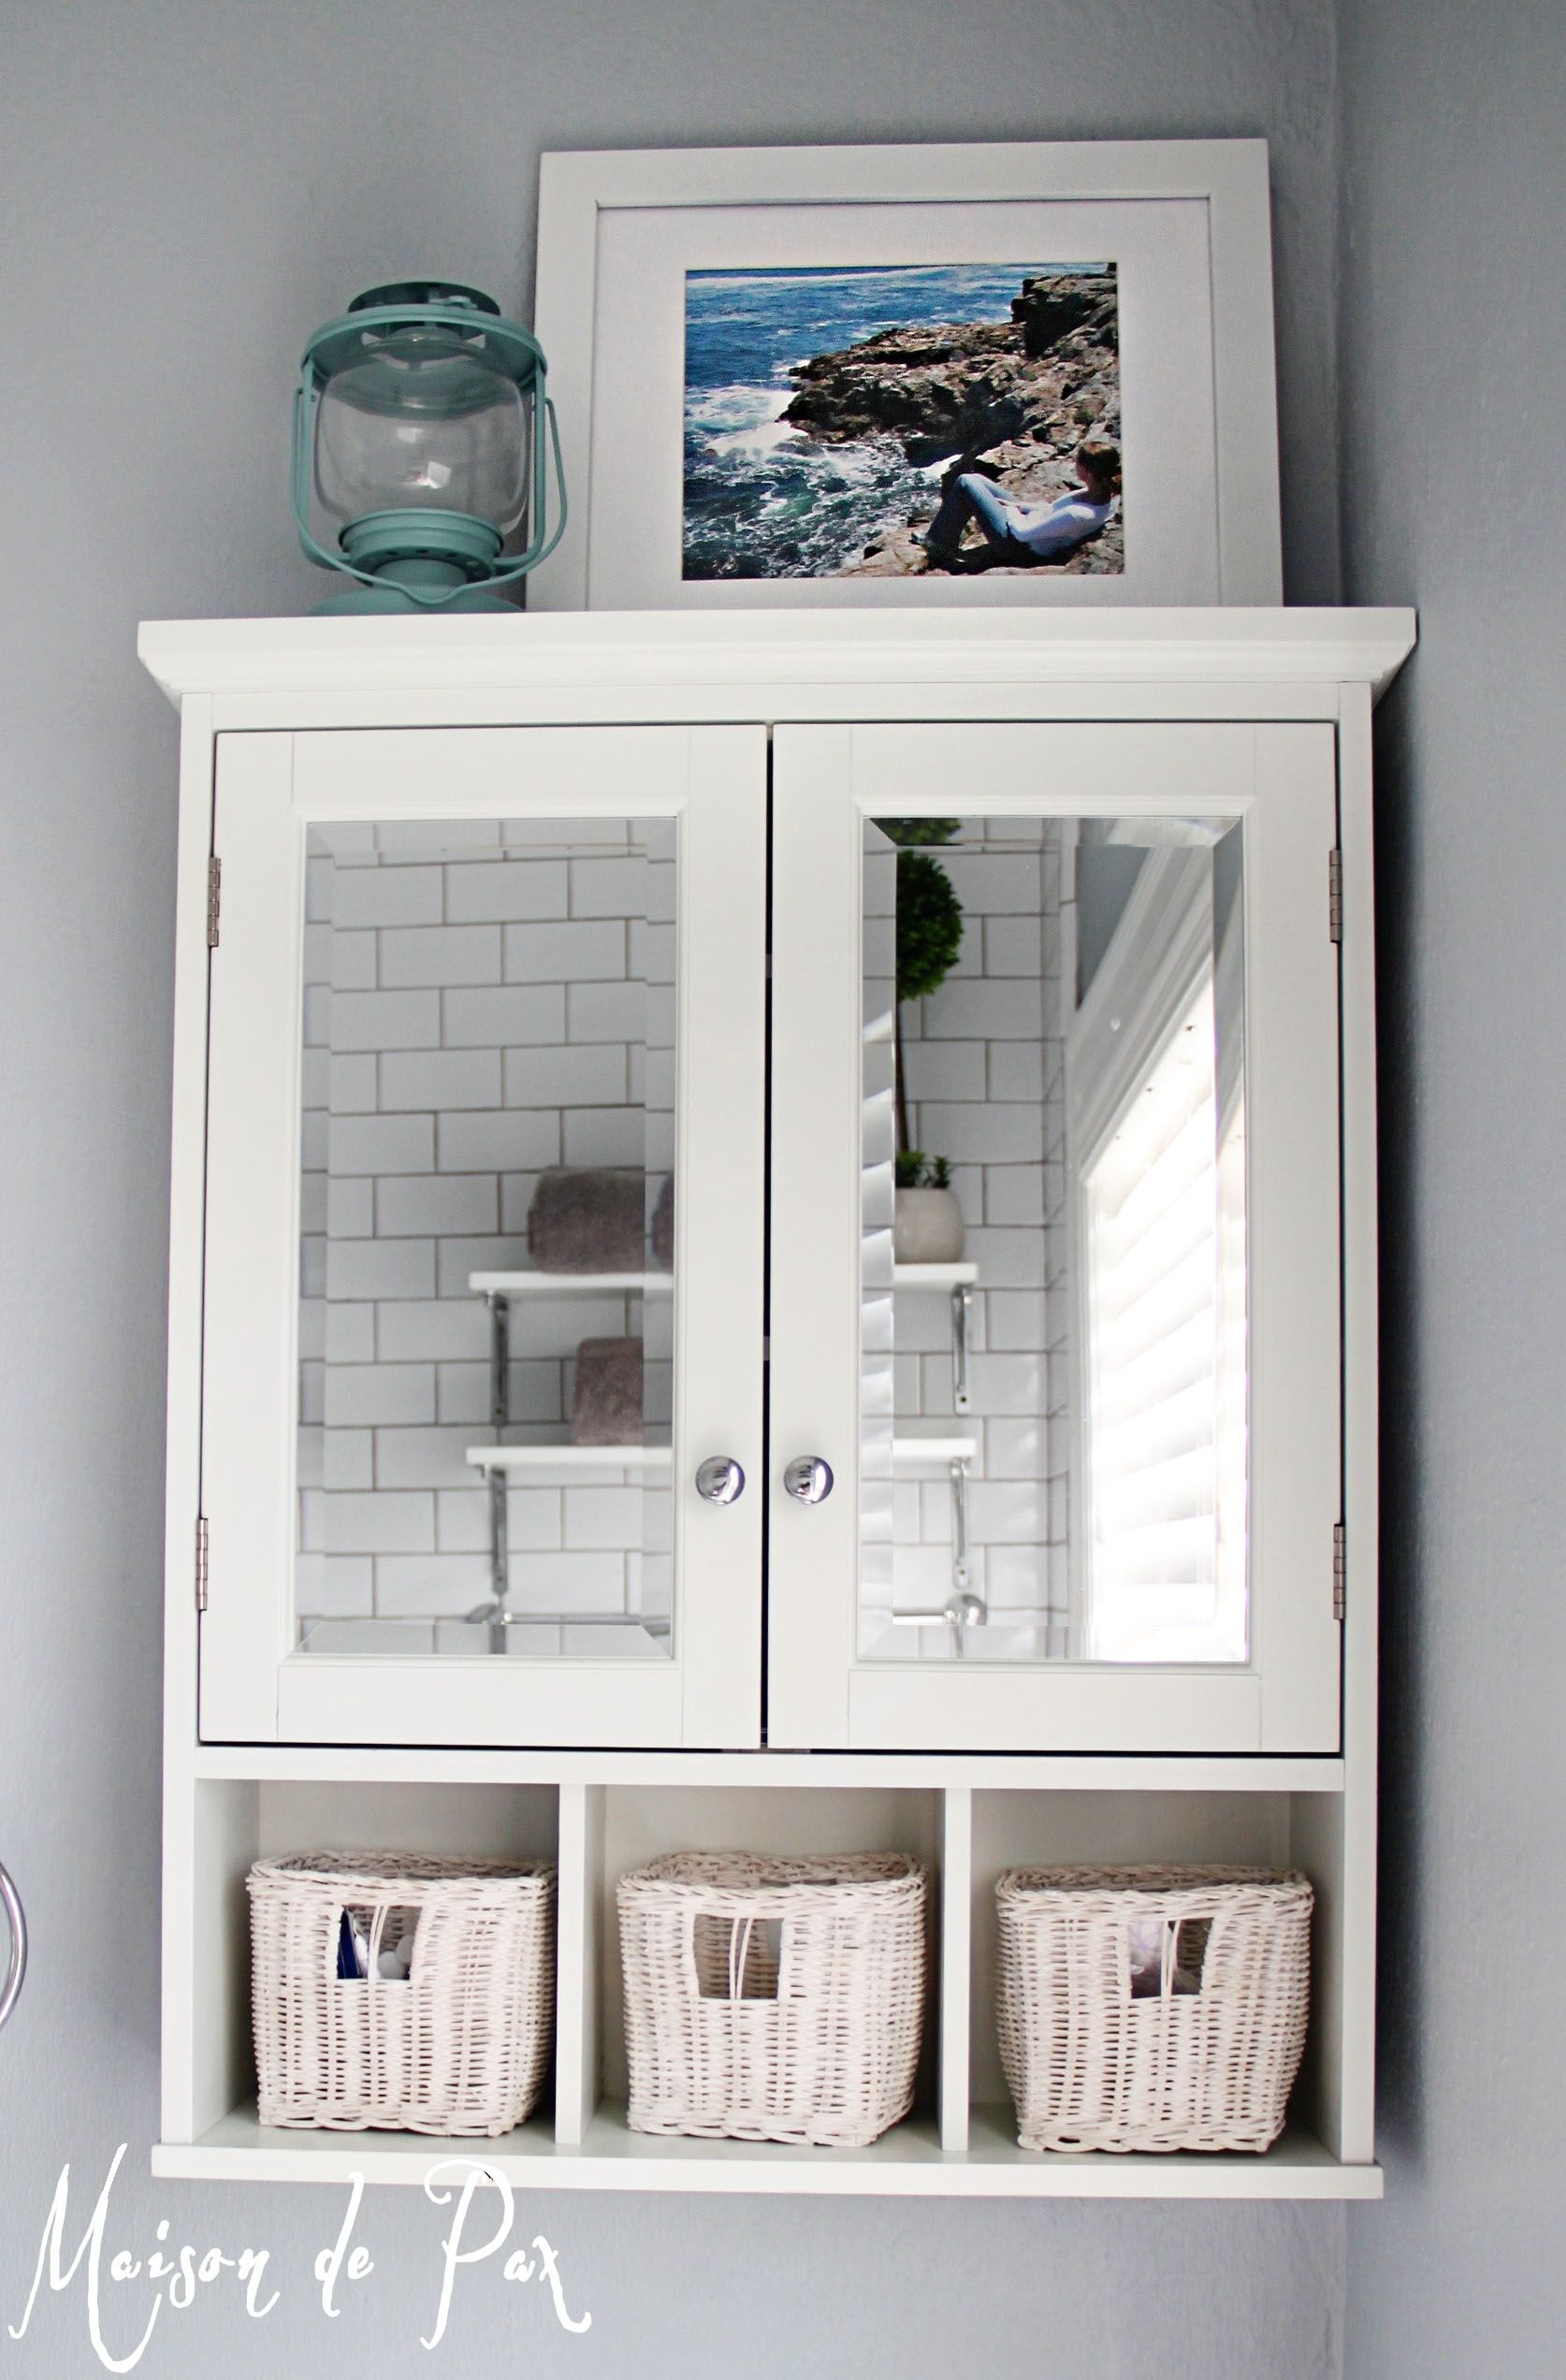 Bathroom Shelving Units Above Toilet With Images Bathroom Wall